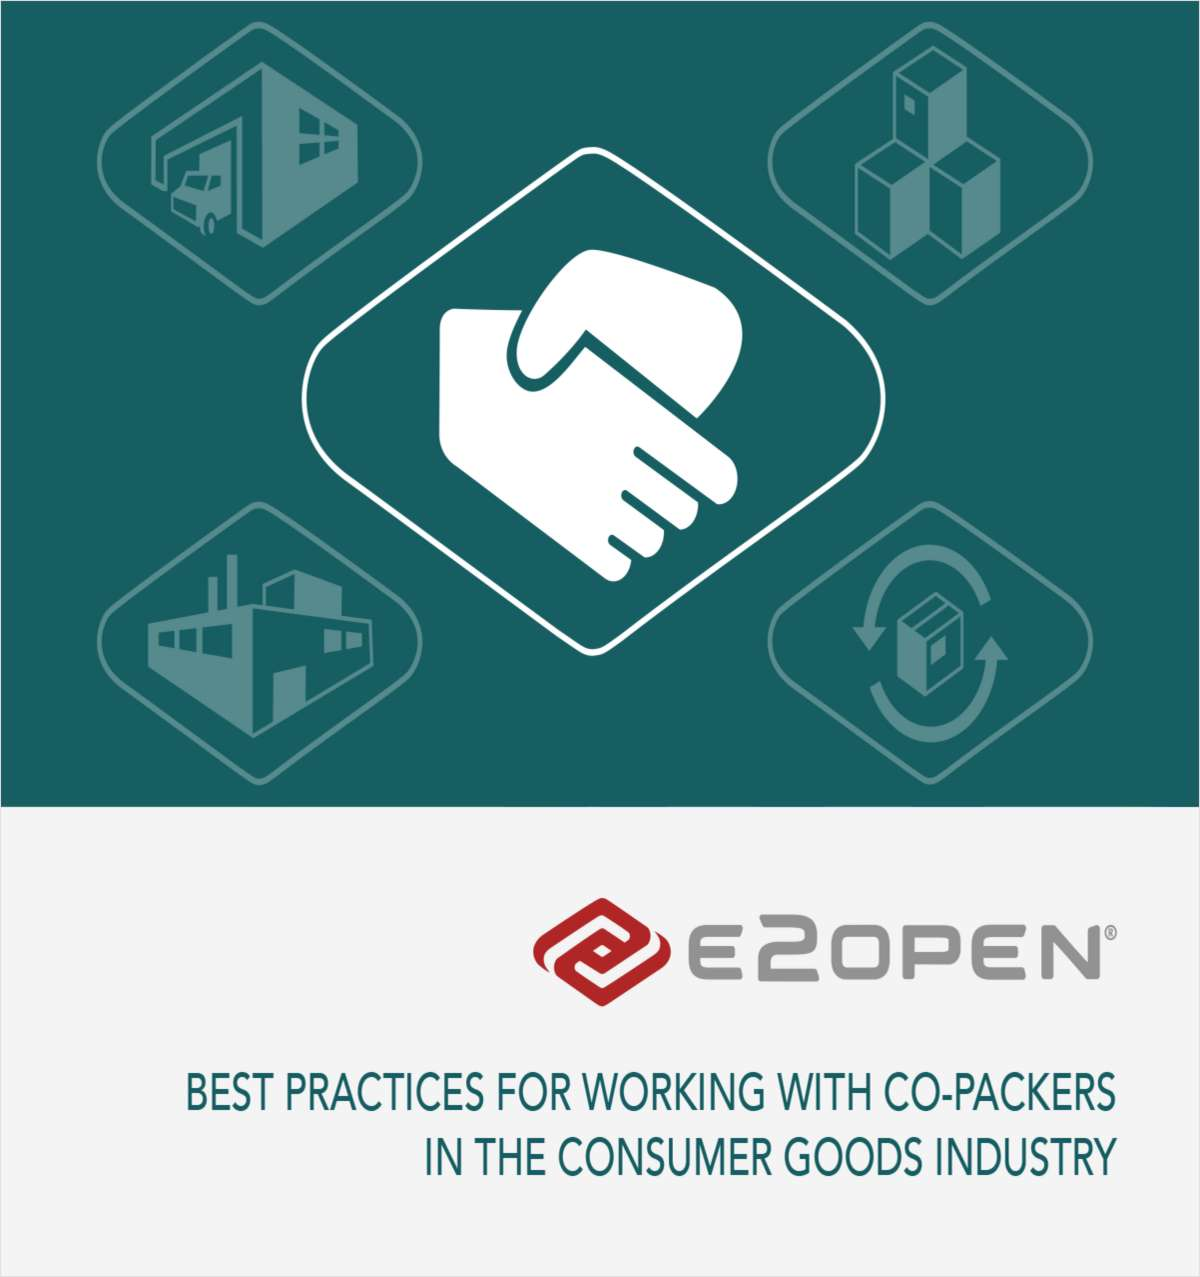 Best Practices for Working with Co-Packers in the Consumer Goods Industry